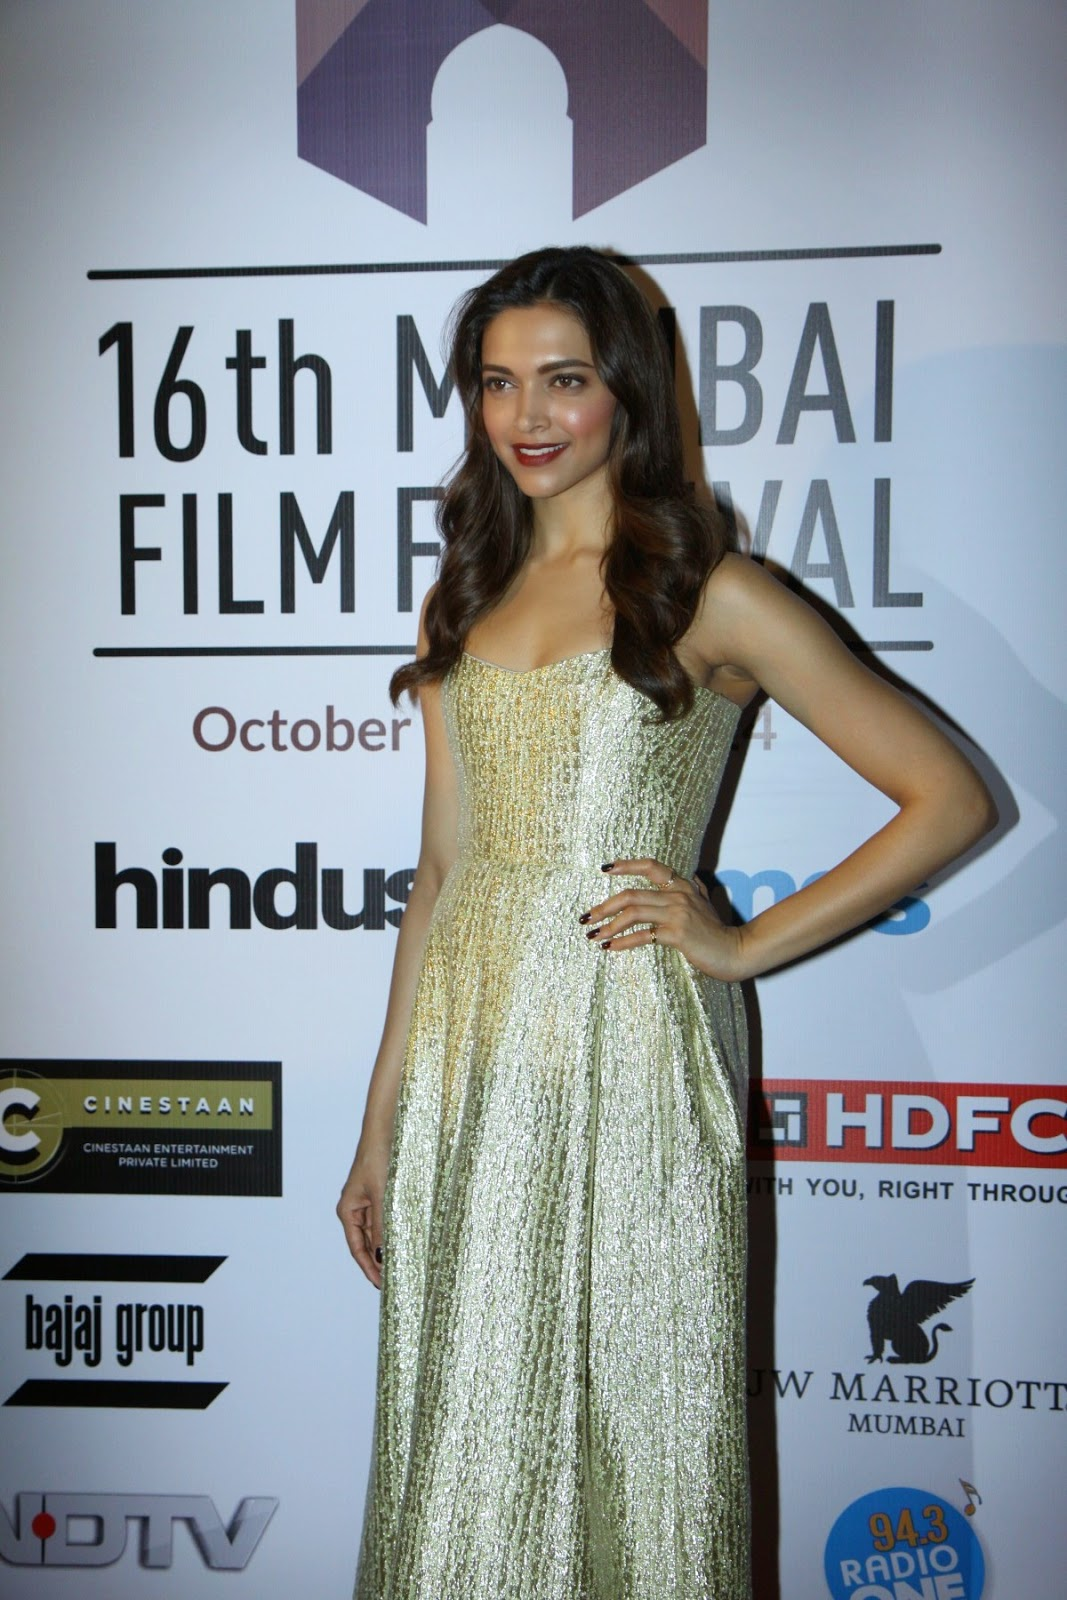 Celebs At 16th Mumbai Film Festival Opening Ceremony